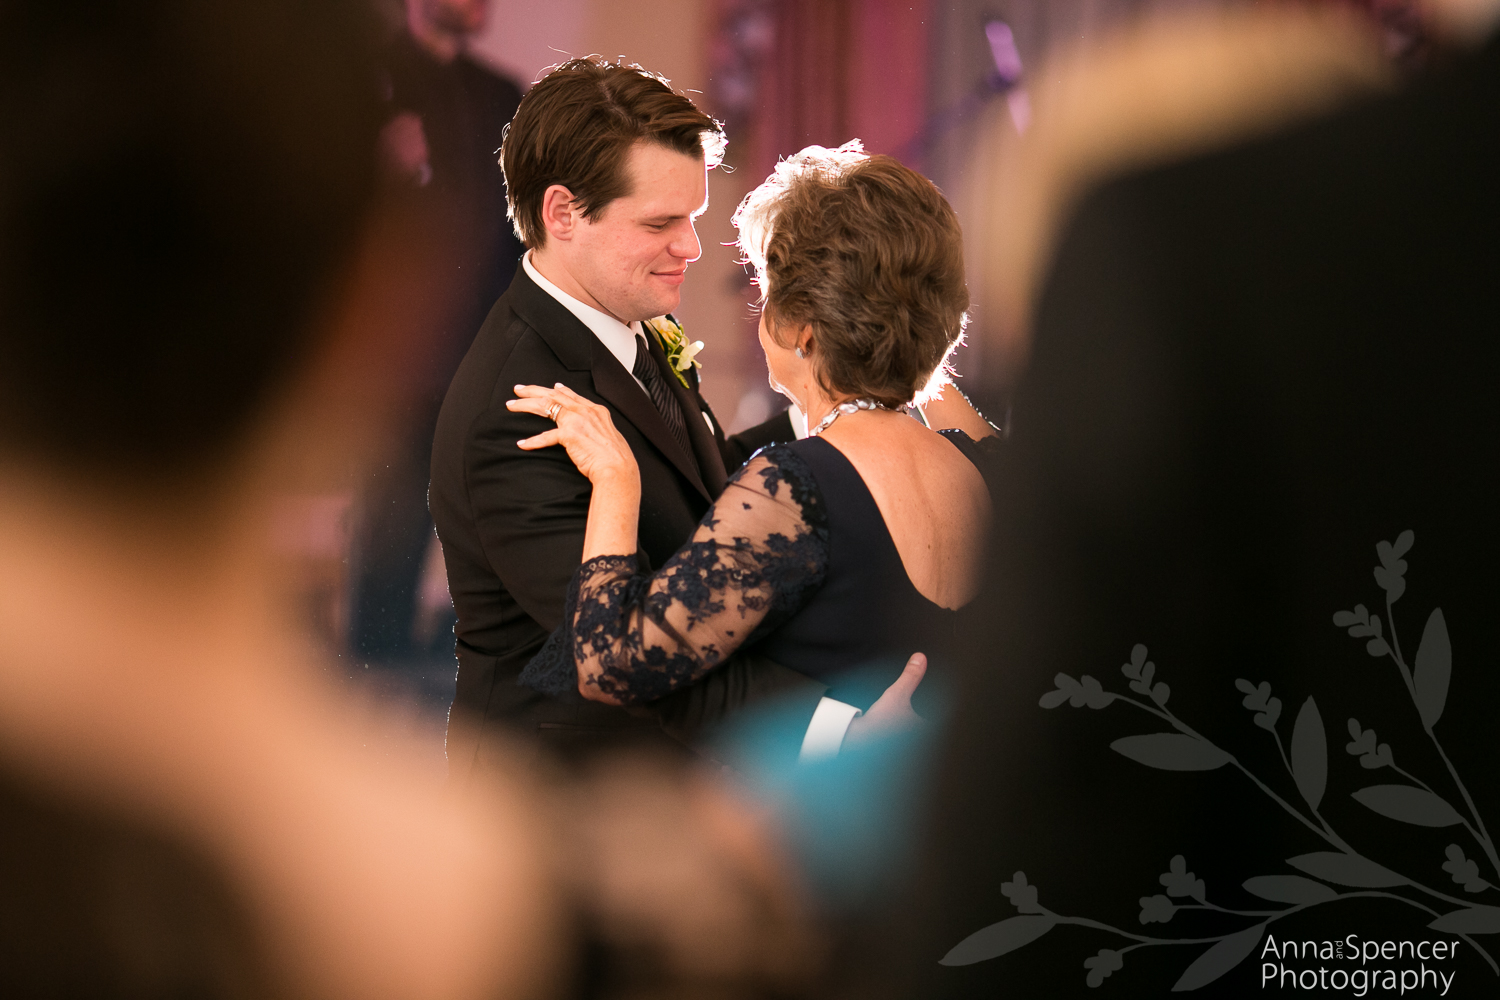 Mother and son dancing at a wedding